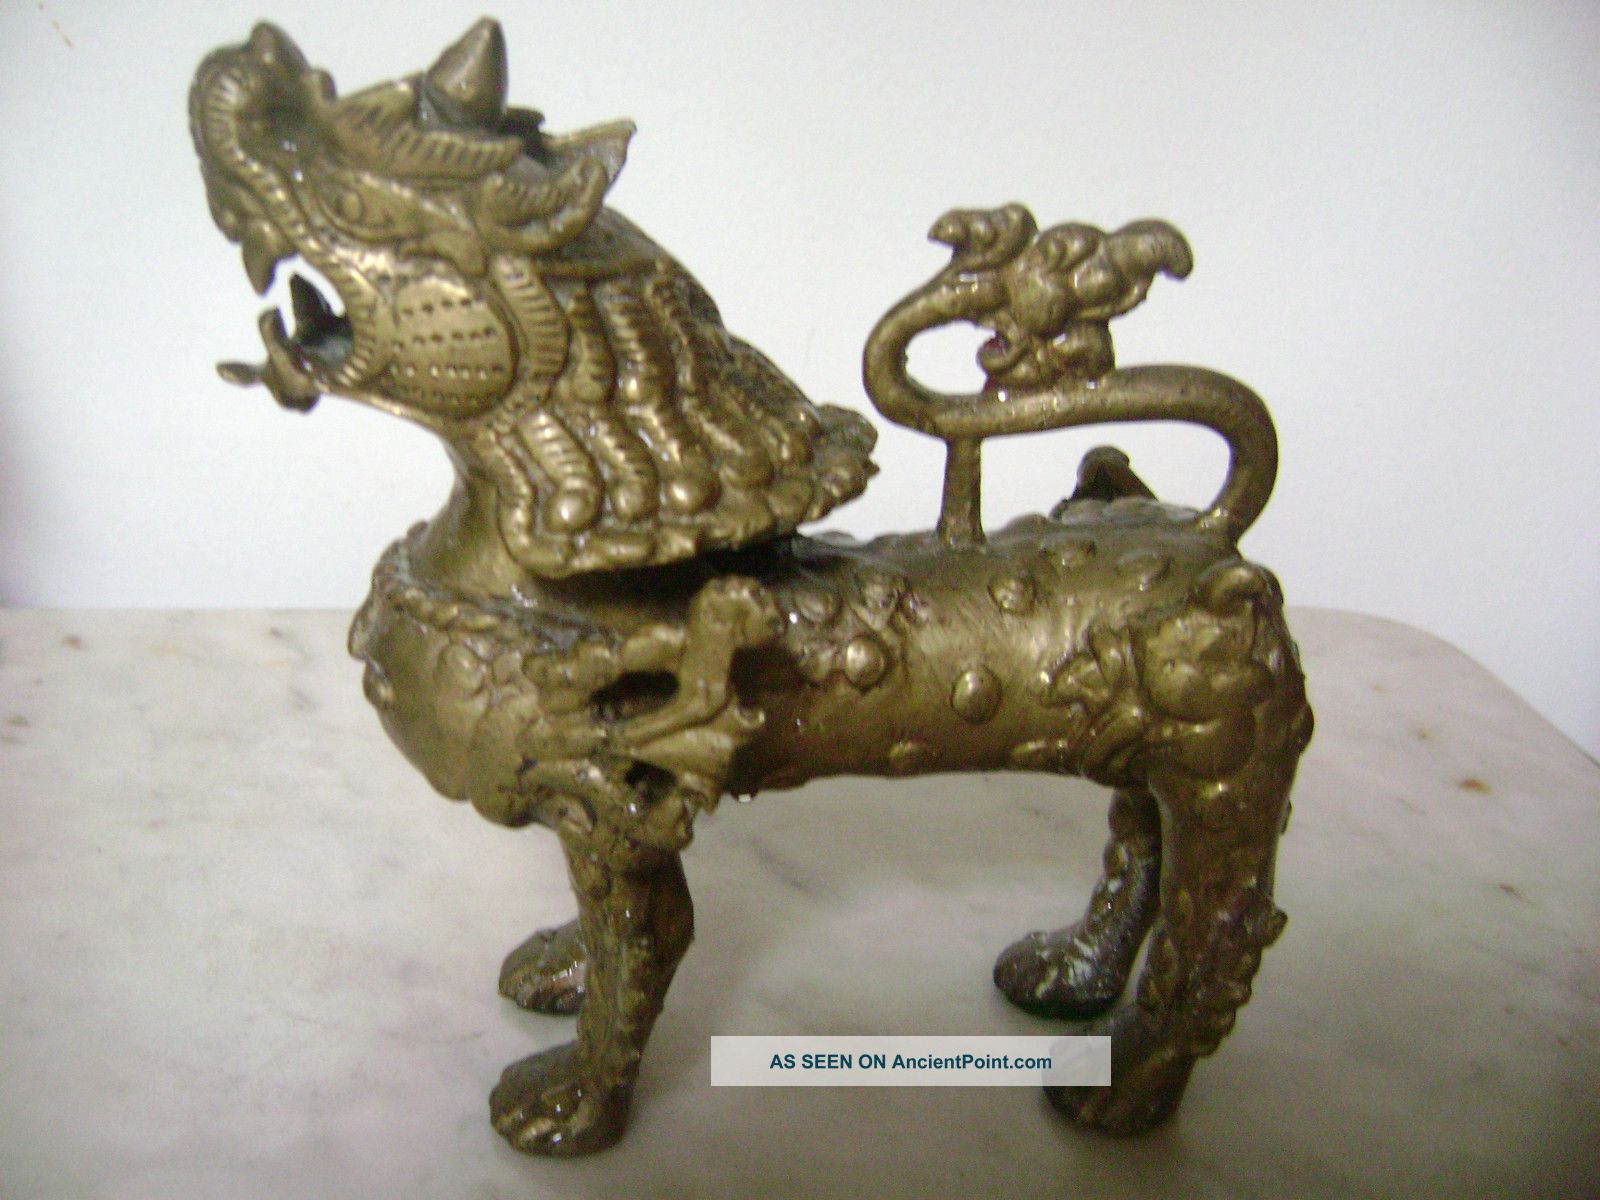 Chinese Imperial Dog: Chinese Vintageasianchineseimperialfufoodogliondragonbrass Breed